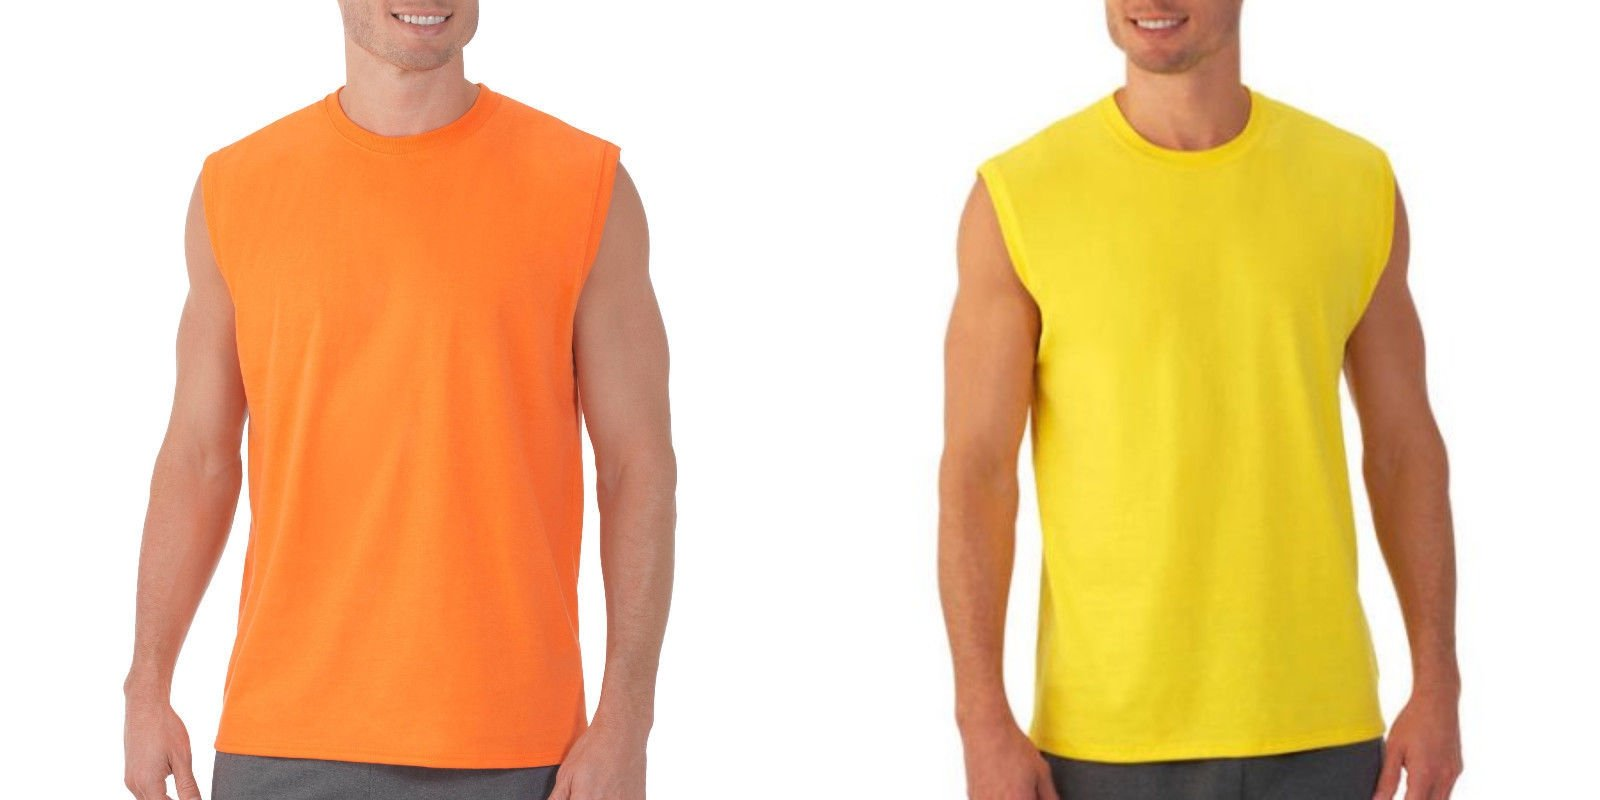 Fruit of the loom men 39 s muscle t shirts 2 pack sizes s 4xl for Mens t shirts 4xl